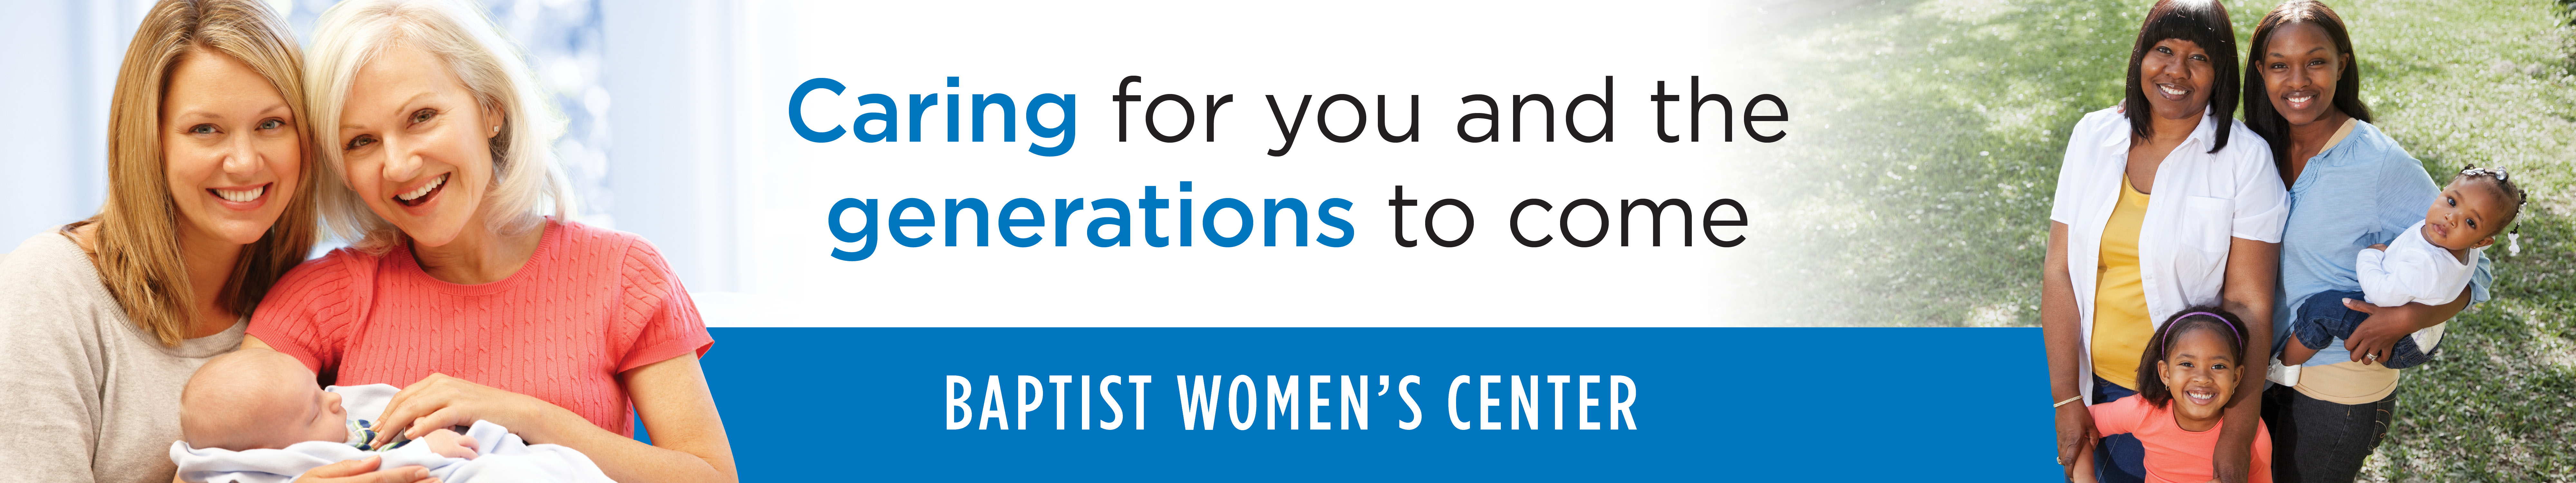 Caring for you and the generations to come. Baptist Women's Center